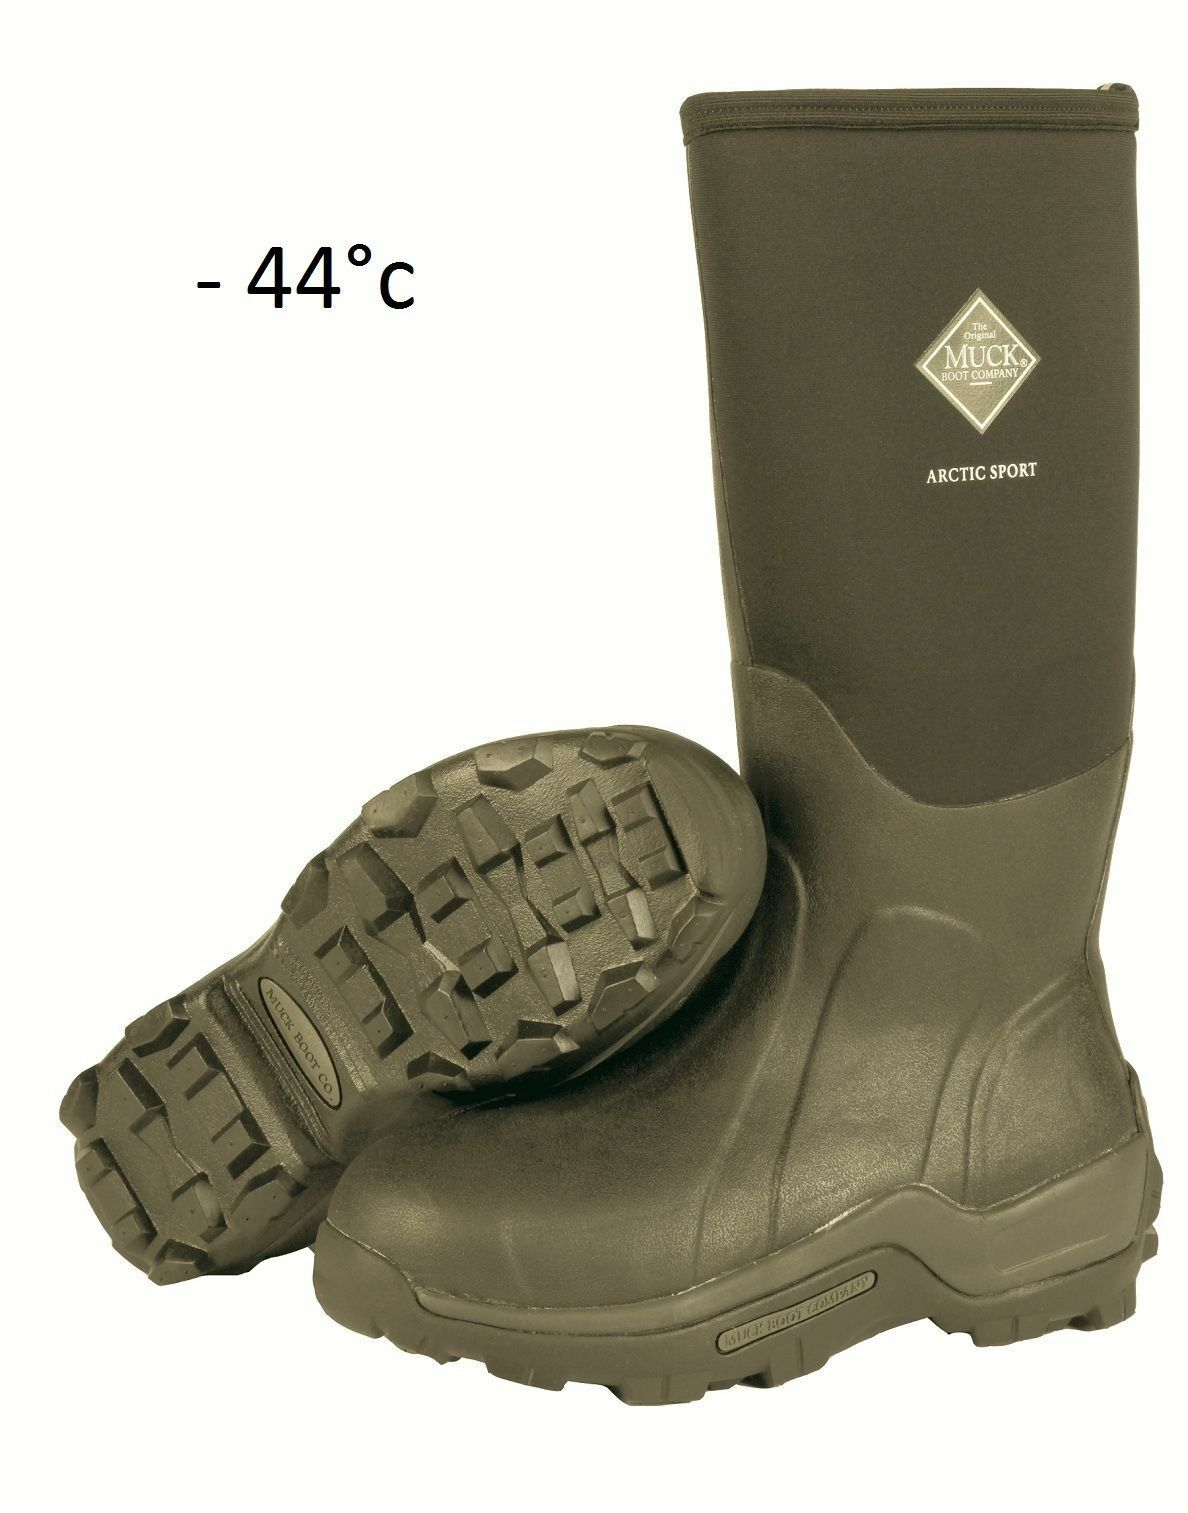 Genuine Muck Boots-Arctic SPORT era Tay NUOVO SPORT EXTRA FODERA muckboot NUOVO Tay STOCK 78cf90